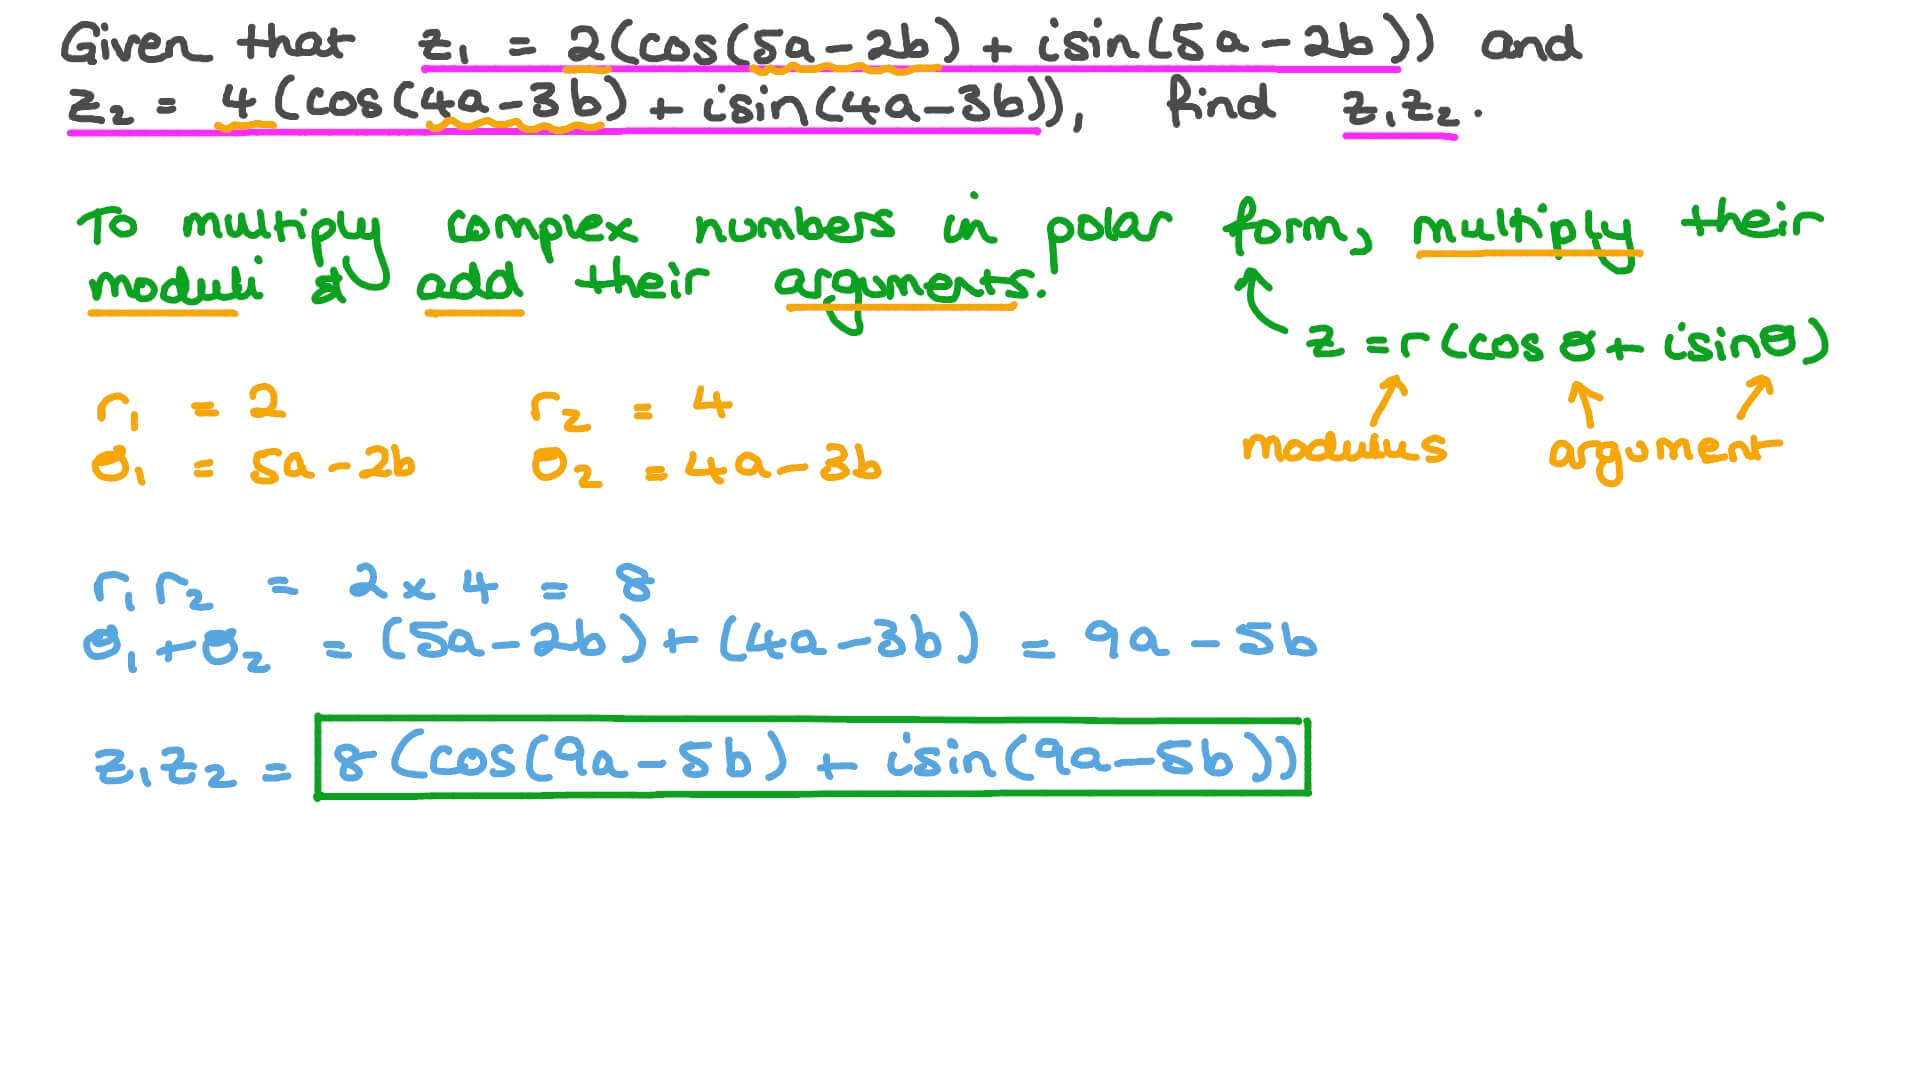 Multiplying Complex Numbers in Polar Form In Multiplying Complex Numbers Worksheet